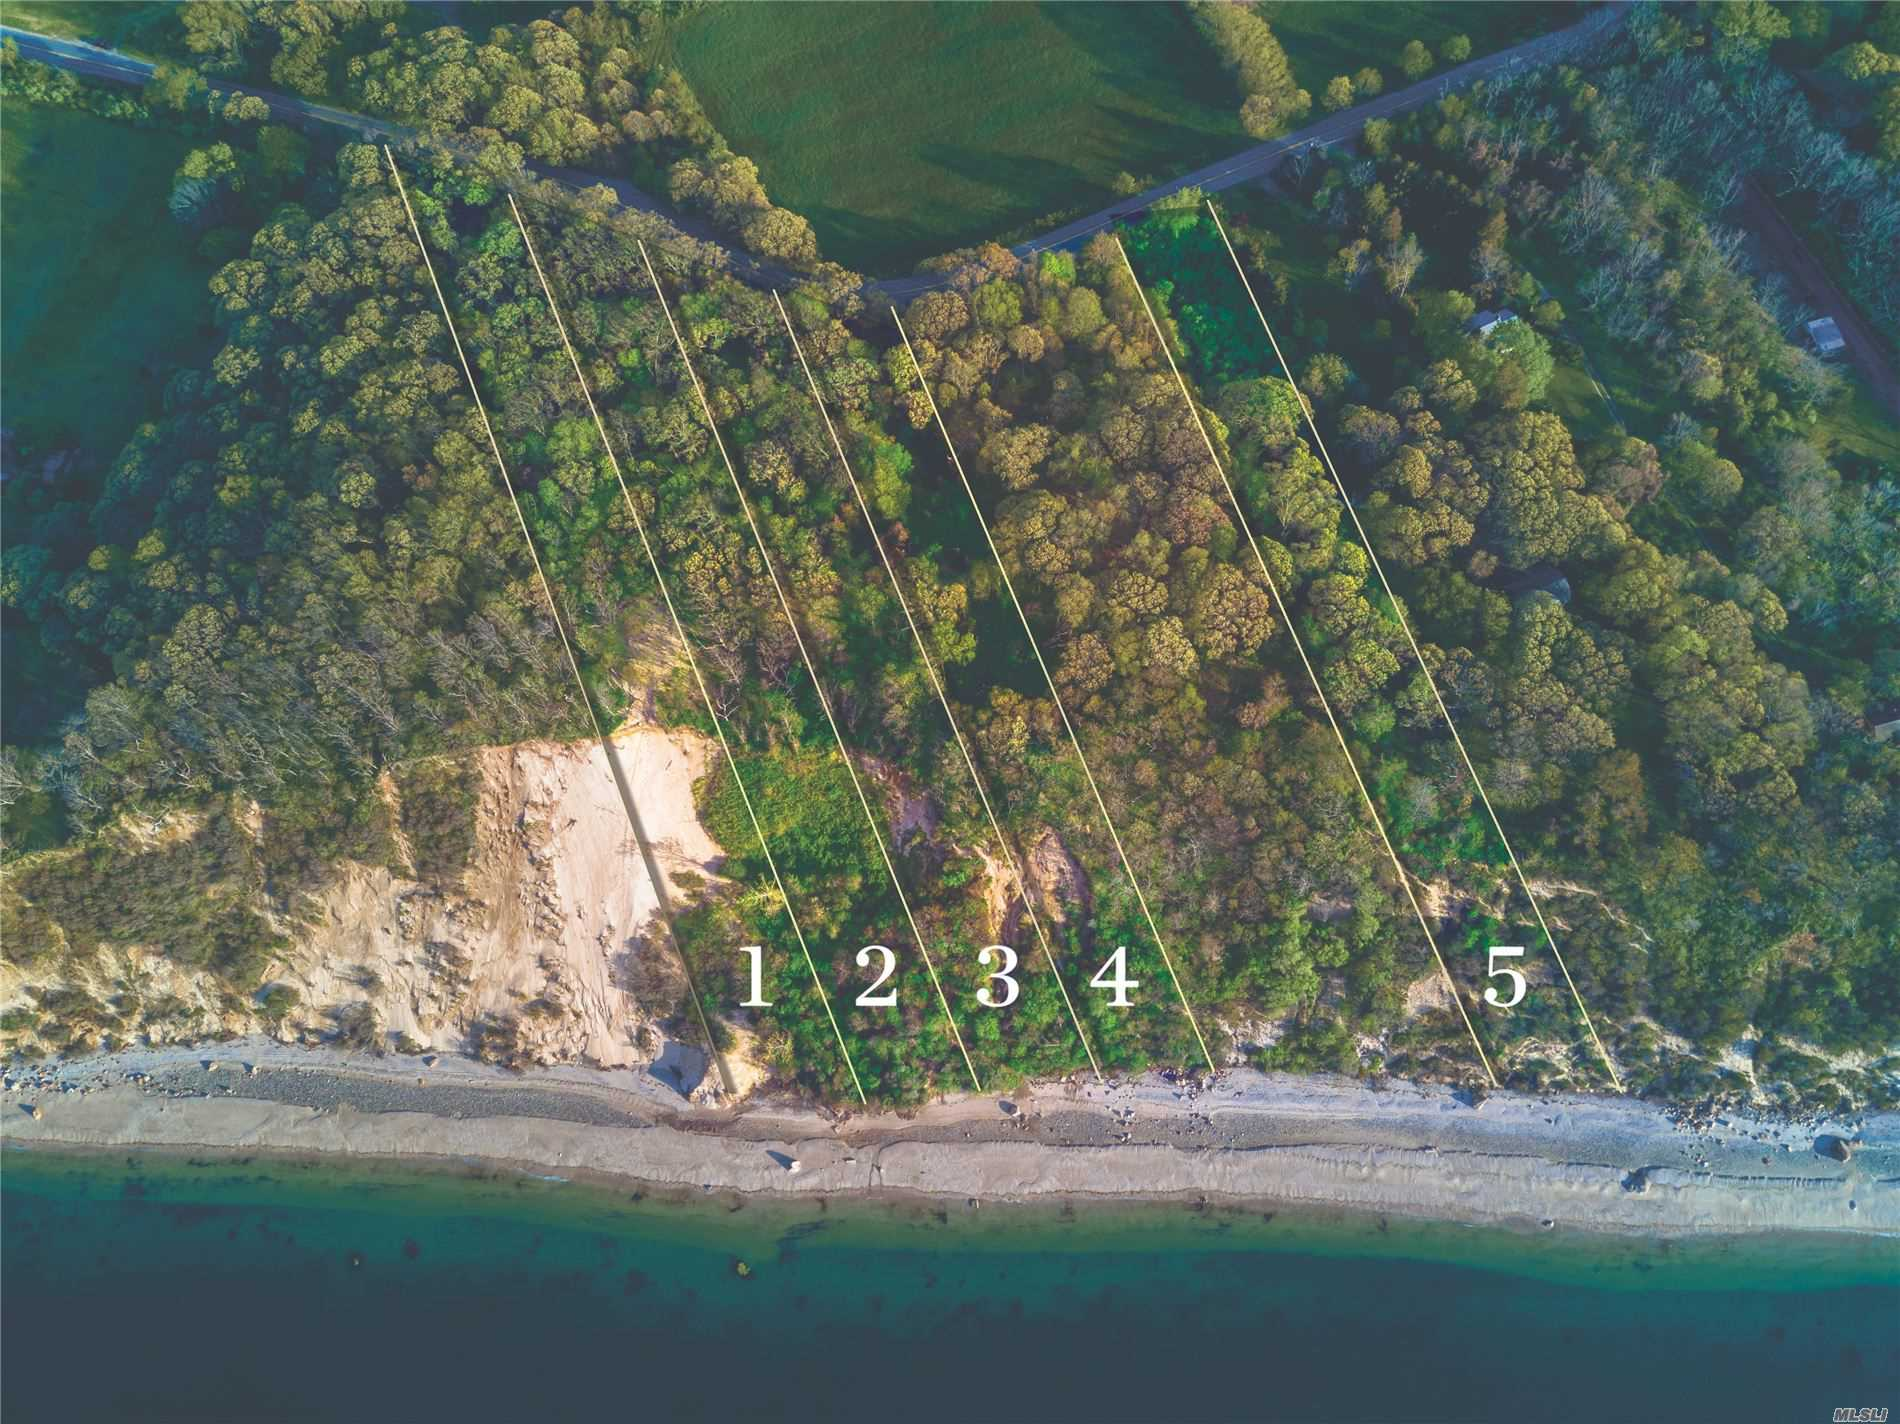 Overlooking The Long Island Sound Your Private Oasis Awaits. 5 Waterfront Parcels That Feature The Gift Of Breathtaking Sunsets & Forever Views. This Is An Incredible Opportunity To Build Your Spectacular Sound Front Compound Or As An Investment To Build Individual Homes. Centrally Located To Li's Finest Beaches, Golf Courses, Shopping, Farm Stands And Wineries.